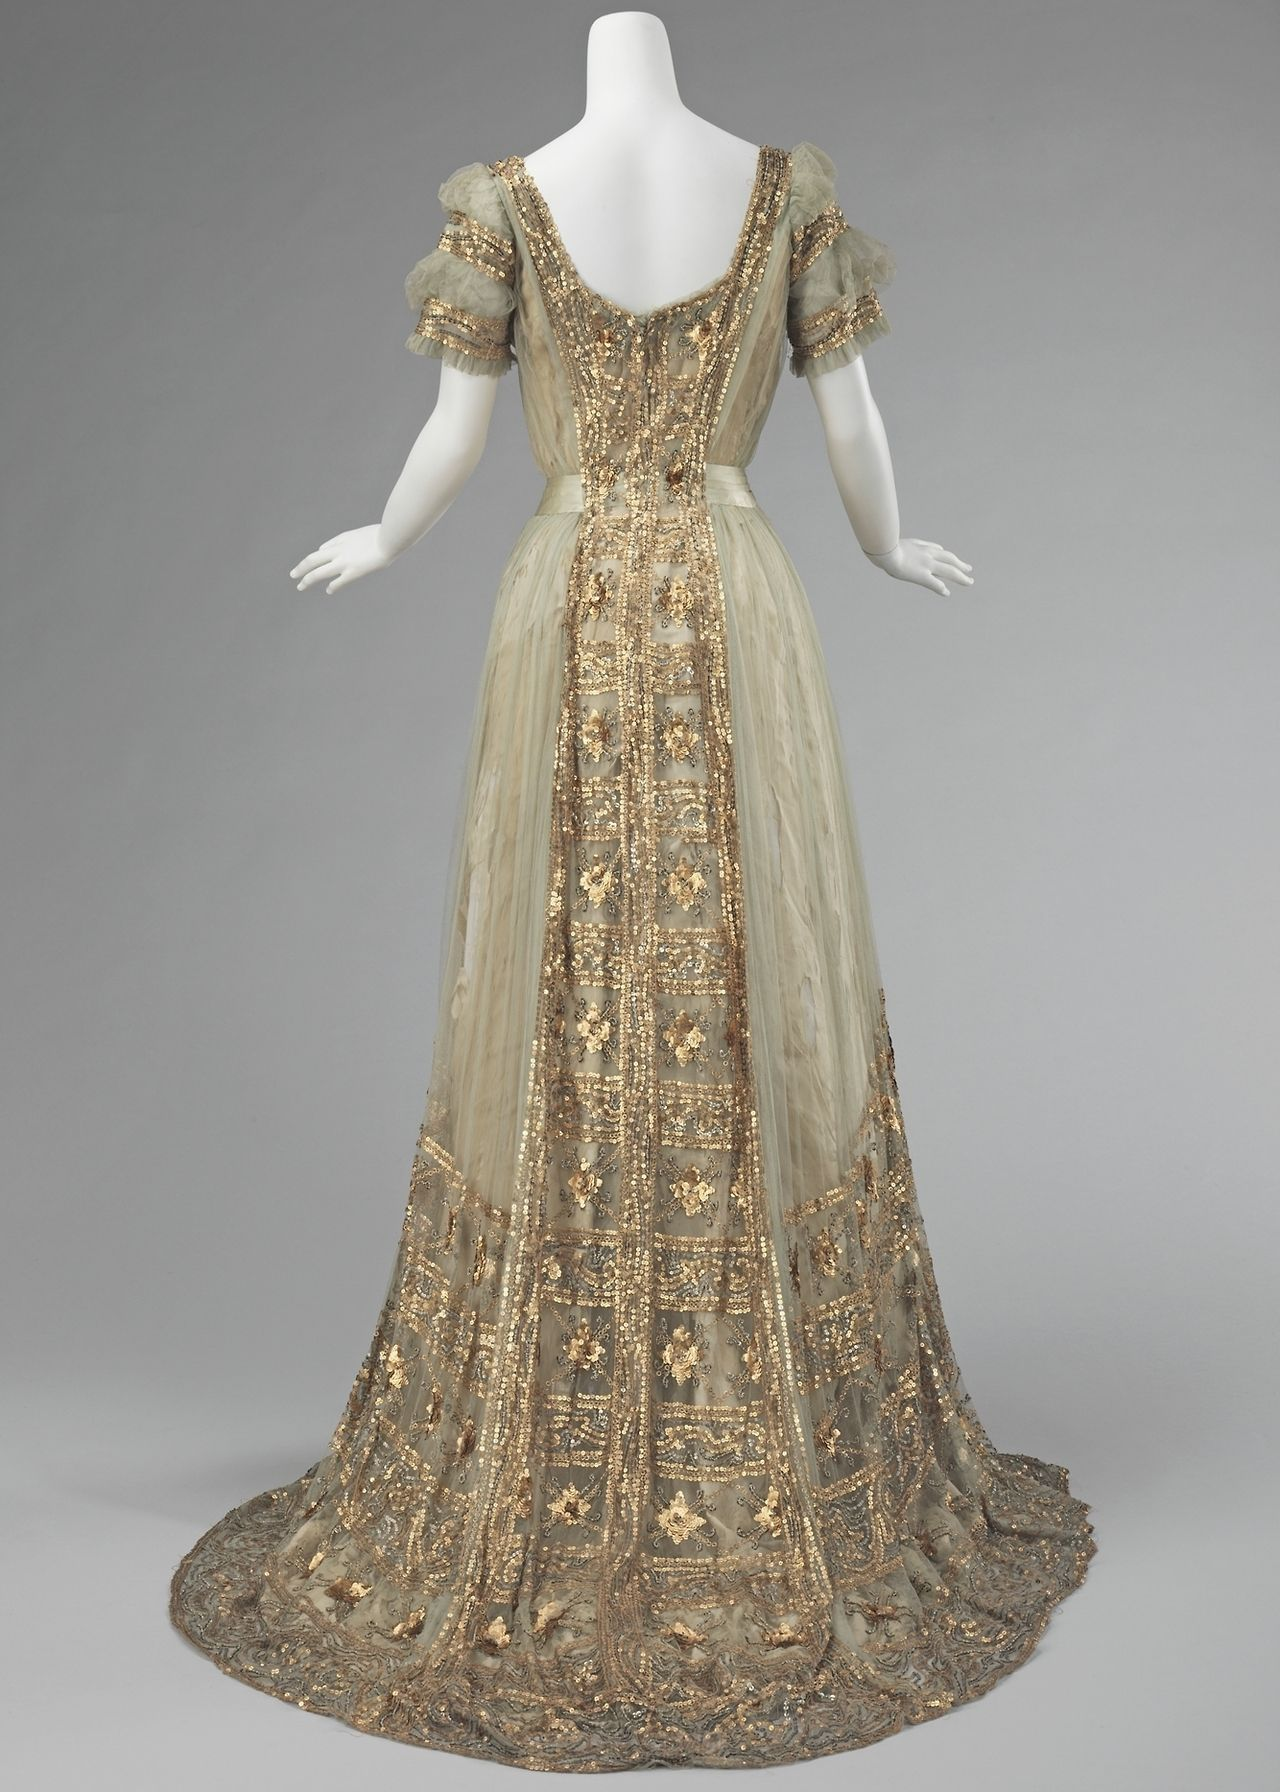 Ball Gown - Mrs. Osborn Company, 1910 : The over-the-top expression ...